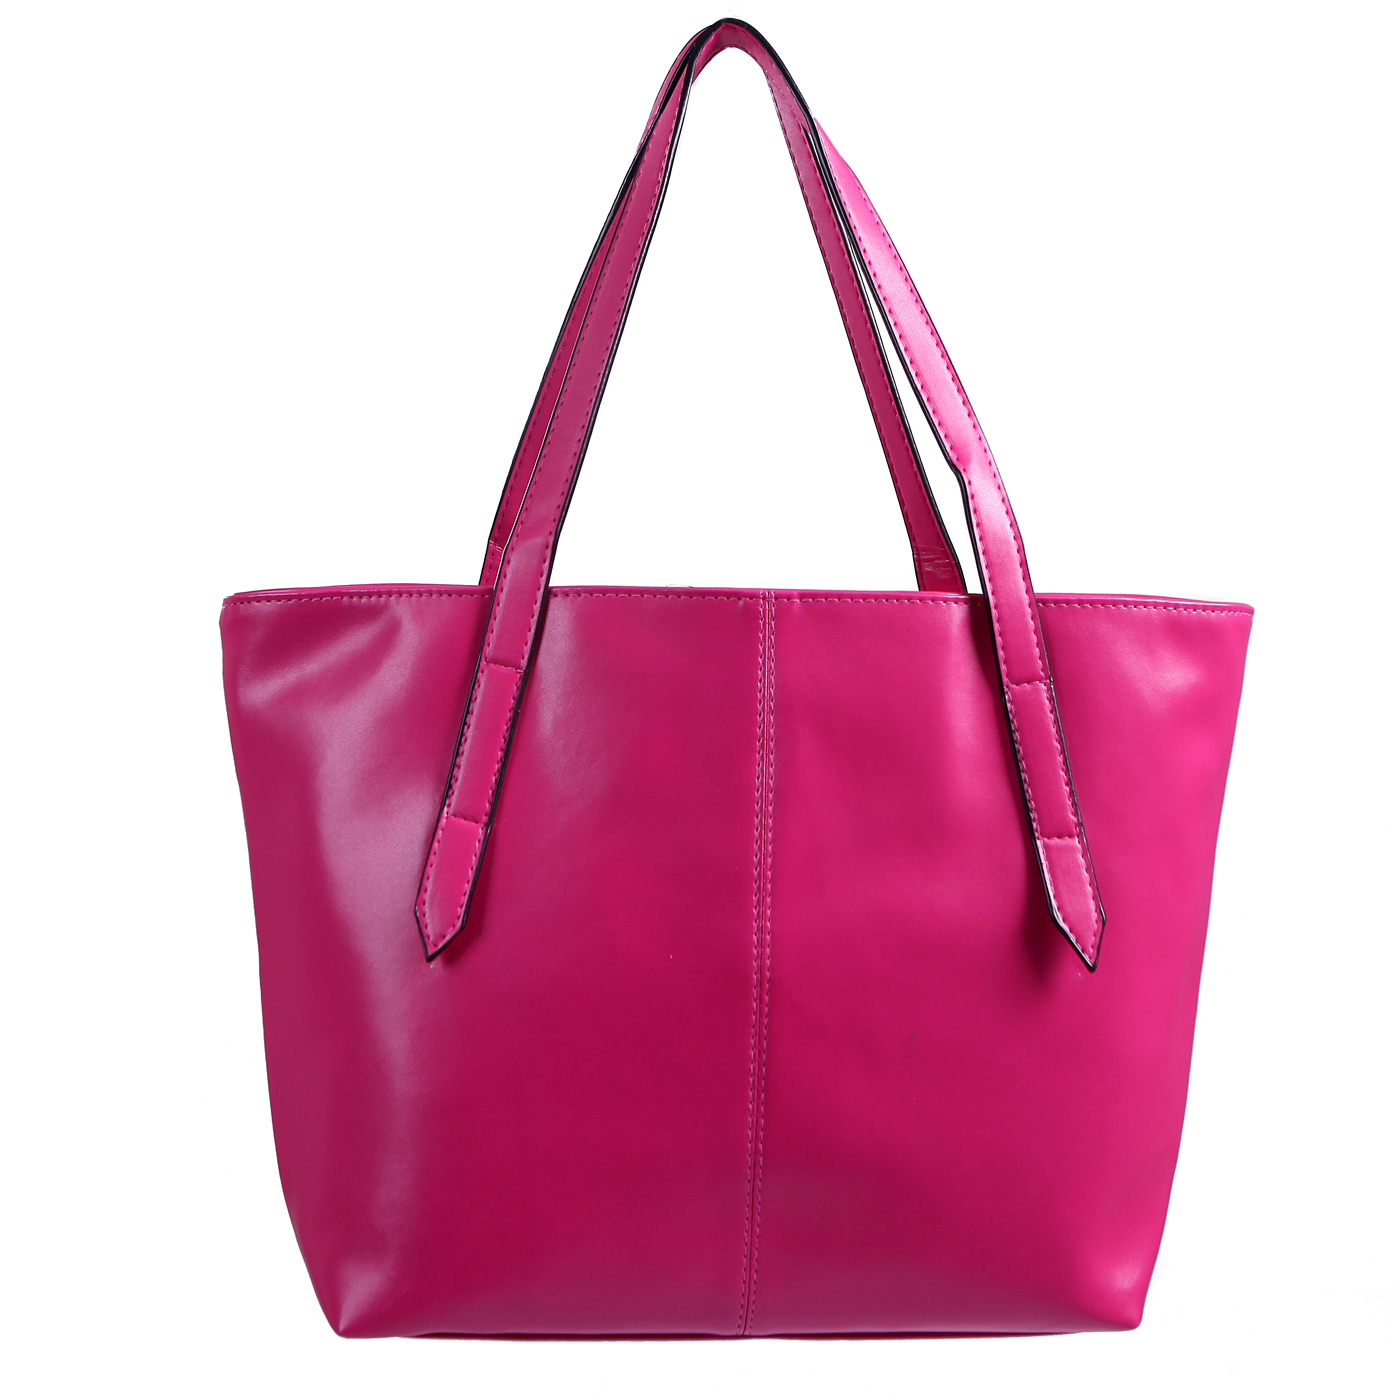 HDE Women's Handbag Leather Carryall Tote